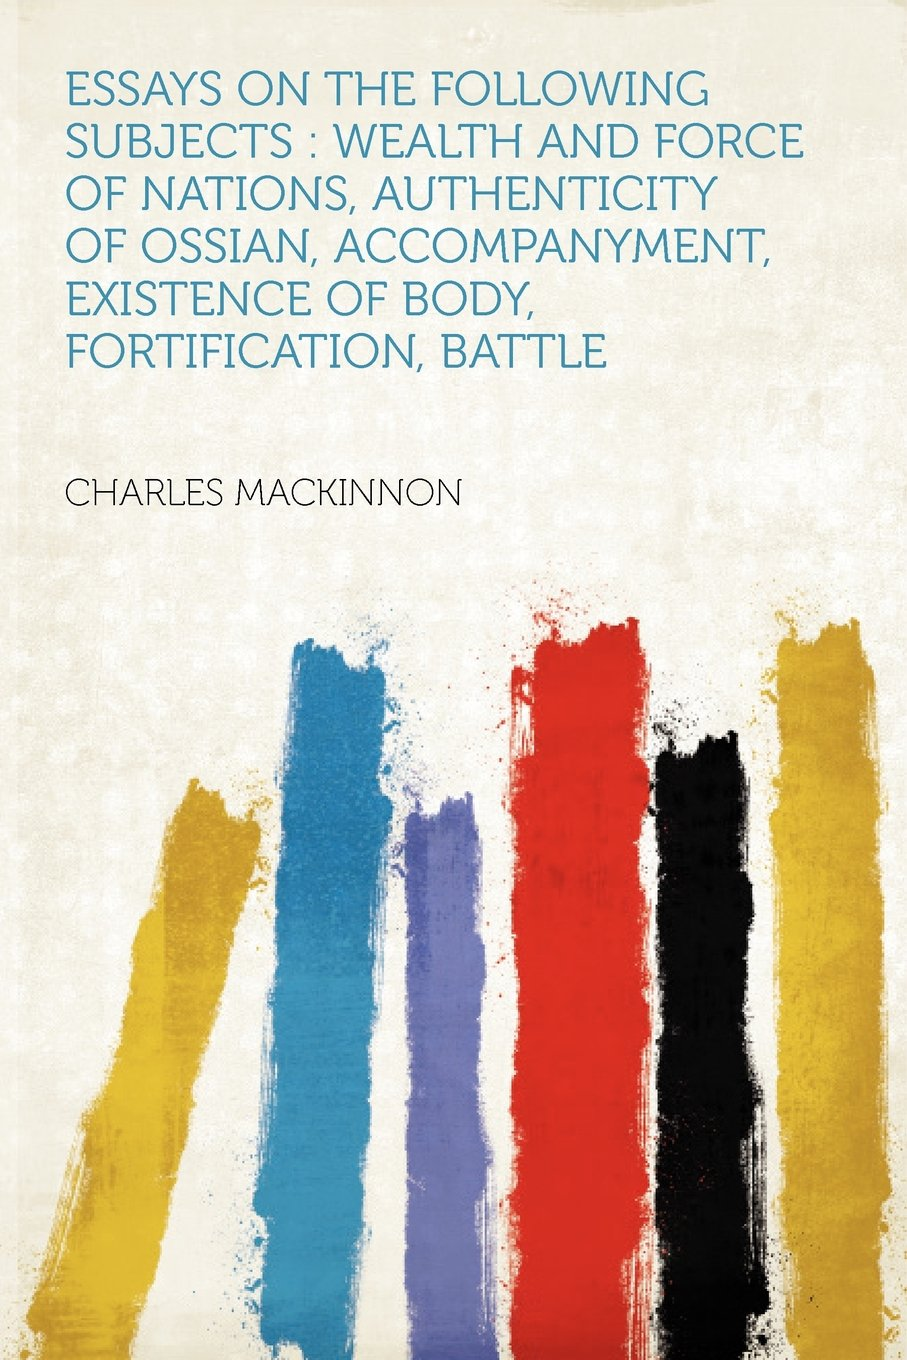 Download Essays on the Following Subjects: Wealth and Force of Nations, Authenticity of Ossian, Accompanyment, Existence of Body, Fortification, Battle ebook